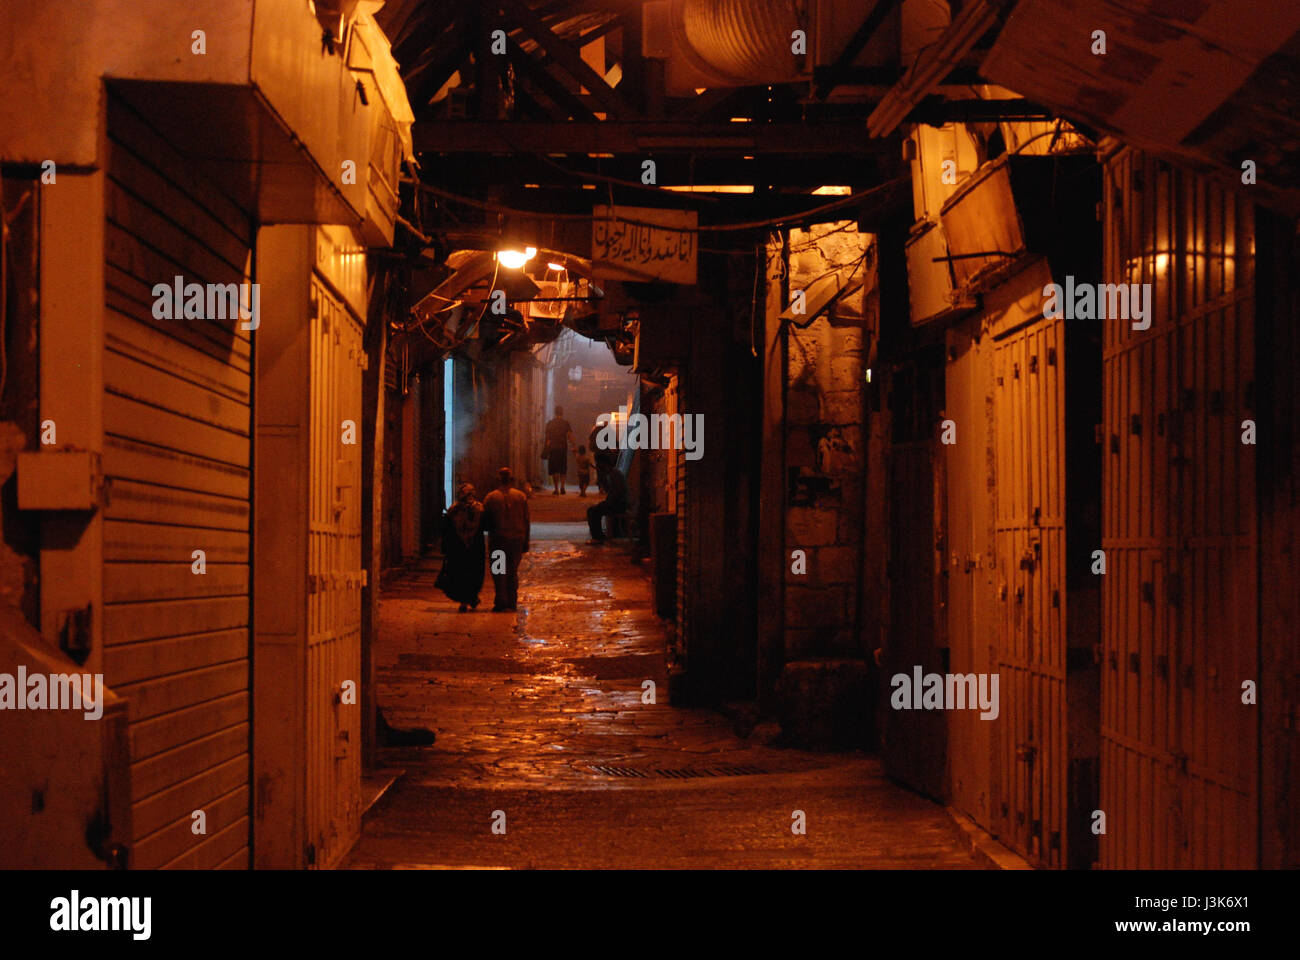 Deserted bazaar street in the evening, Muslim Quarter, Old City, Jerusalem, Israel, Middle East - Stock Image